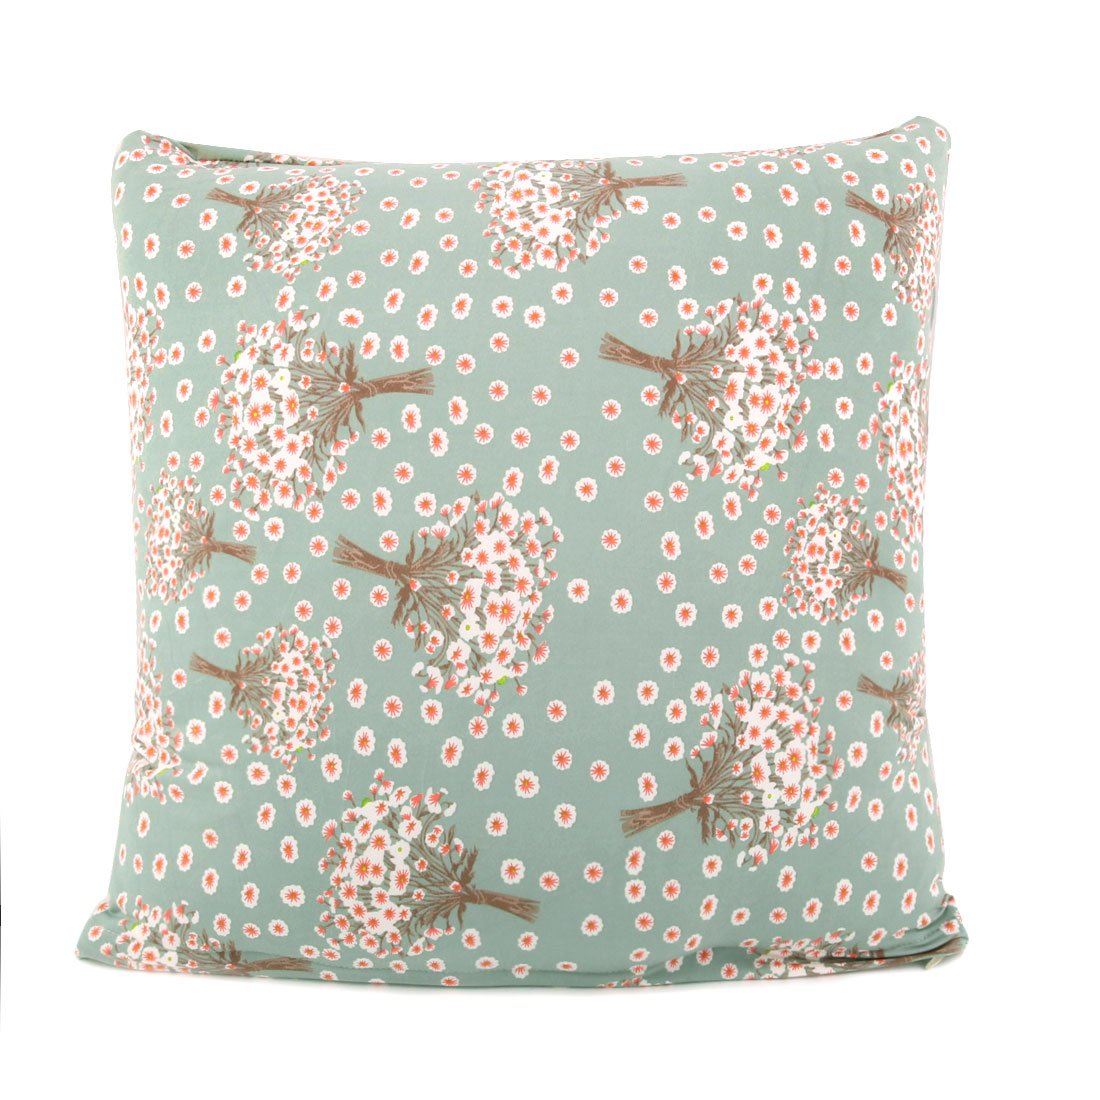 uxcell Square Throw Pillow Case Cushion Cover Home Sofa Decorative Elegant Flower Pattern 18 x 18 COMIN18JU048297